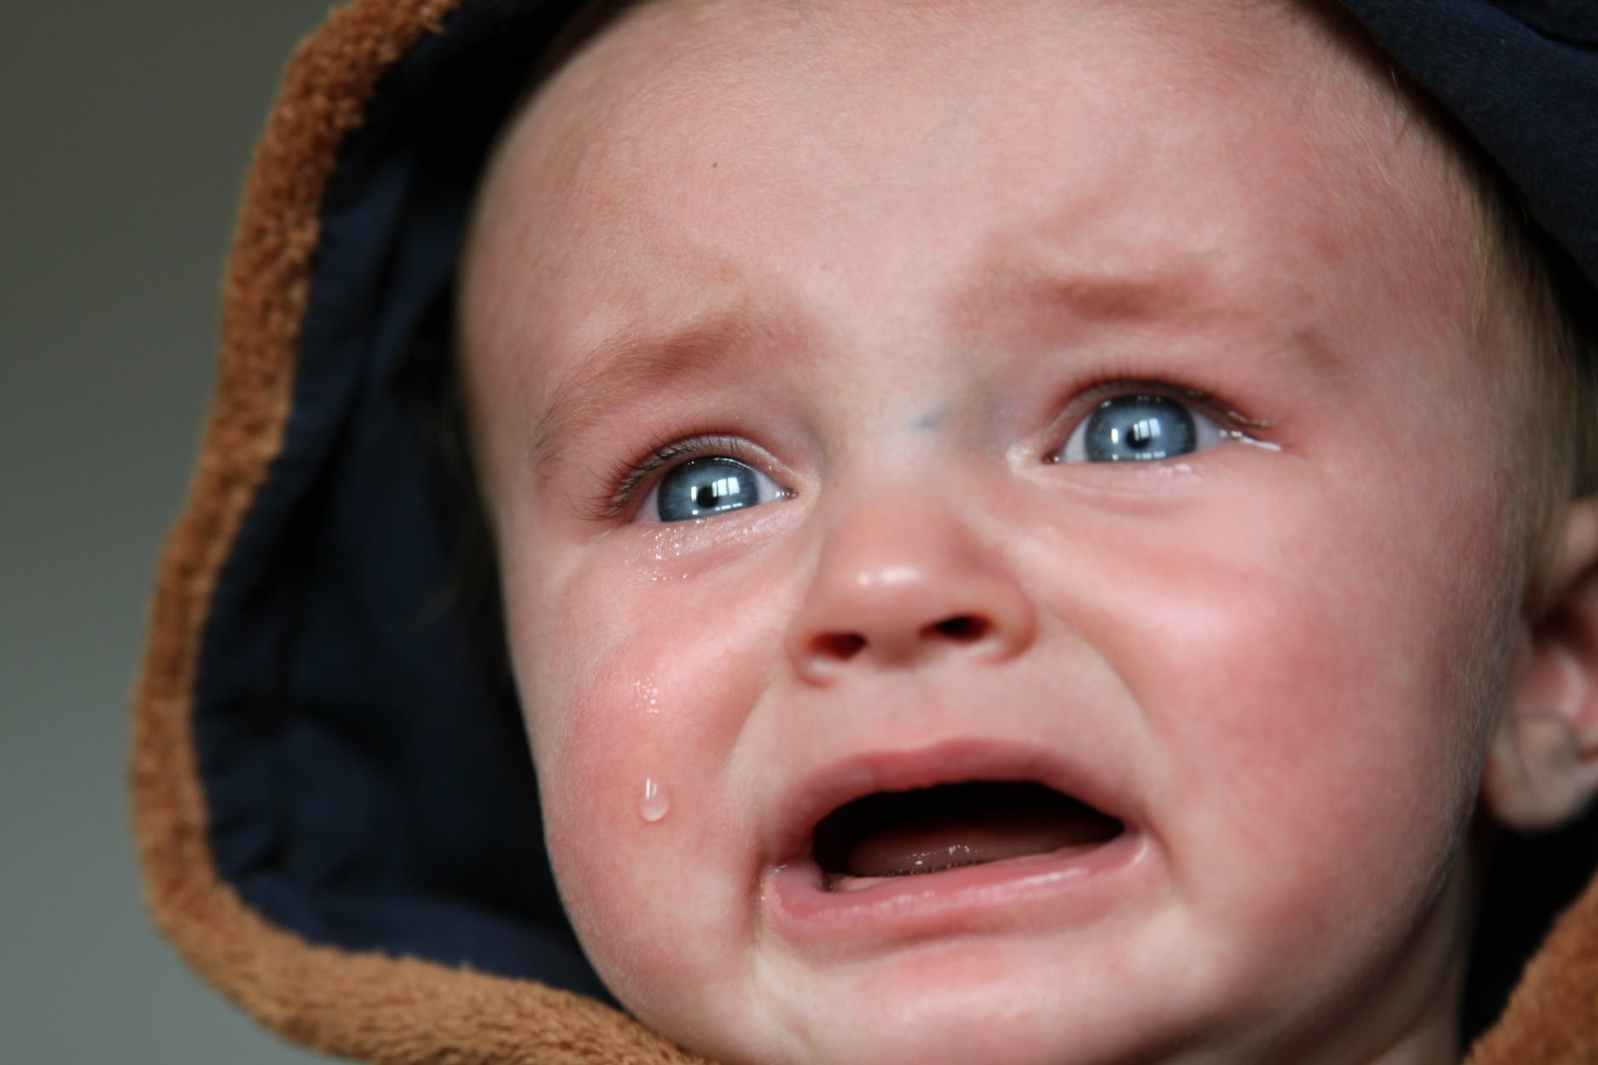 crying baby syndrome